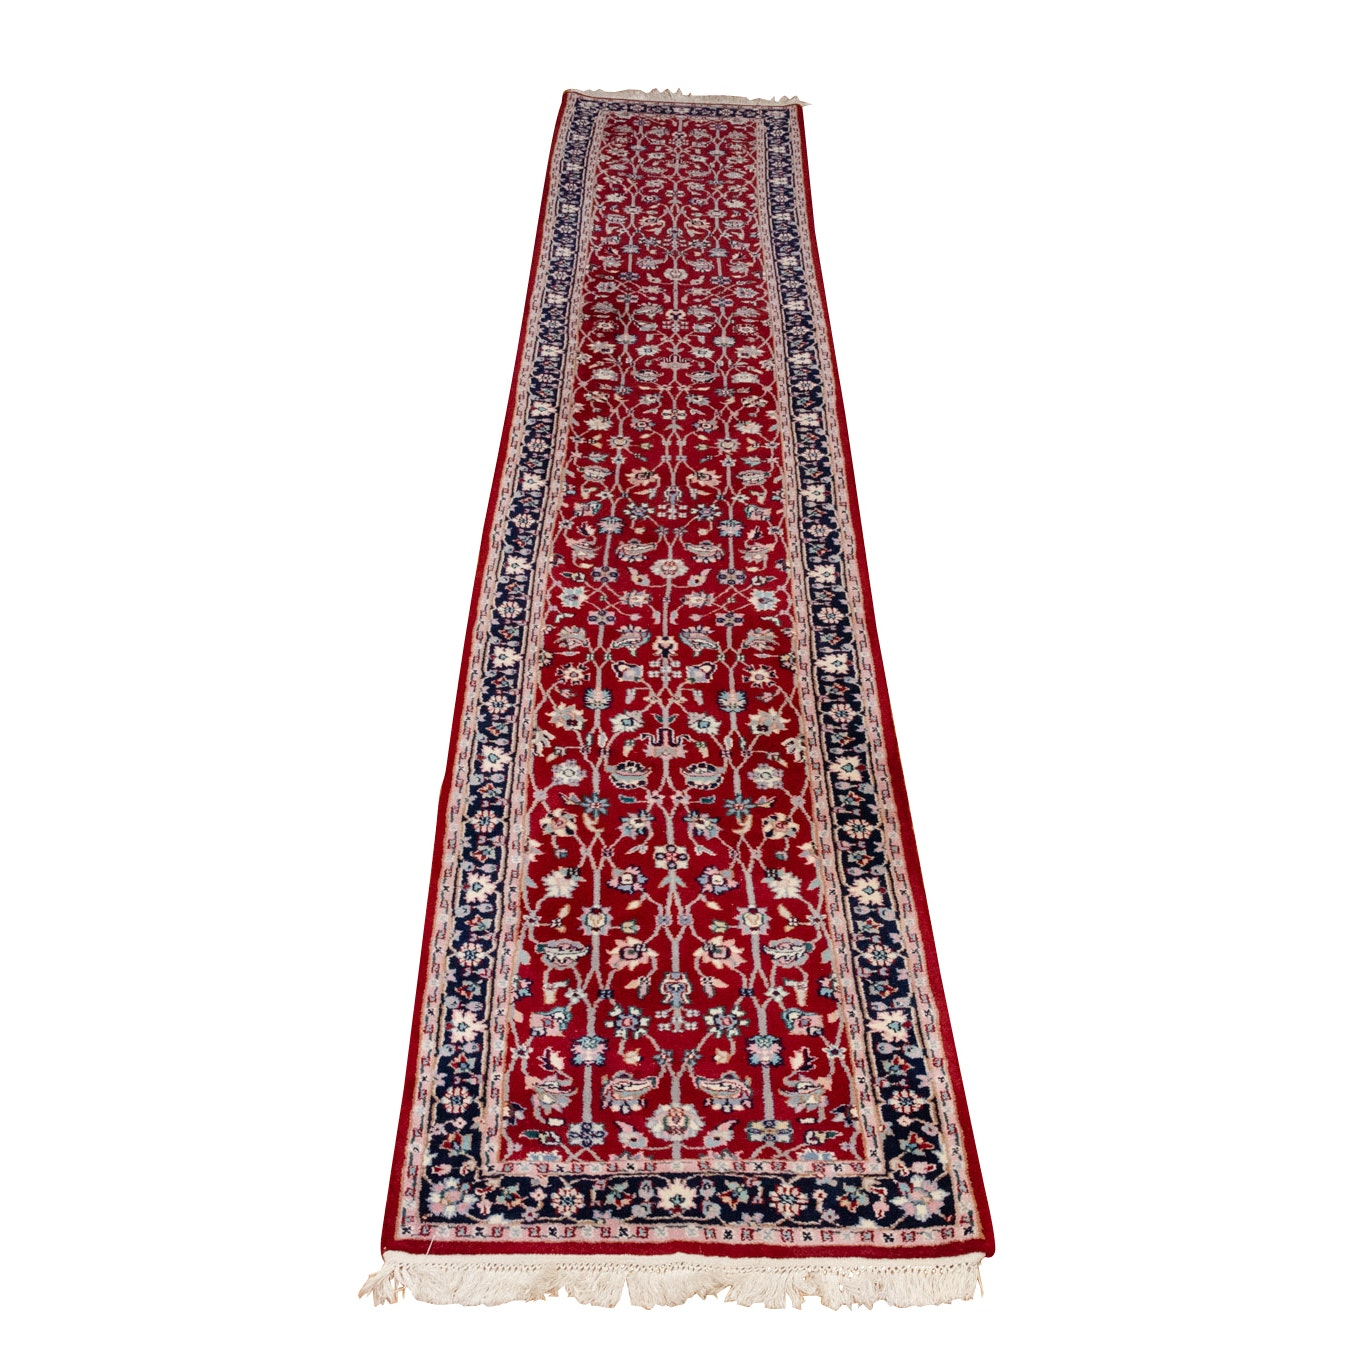 Hand-Knotted Indo-Persian Tabriz Wool Carpet Runner